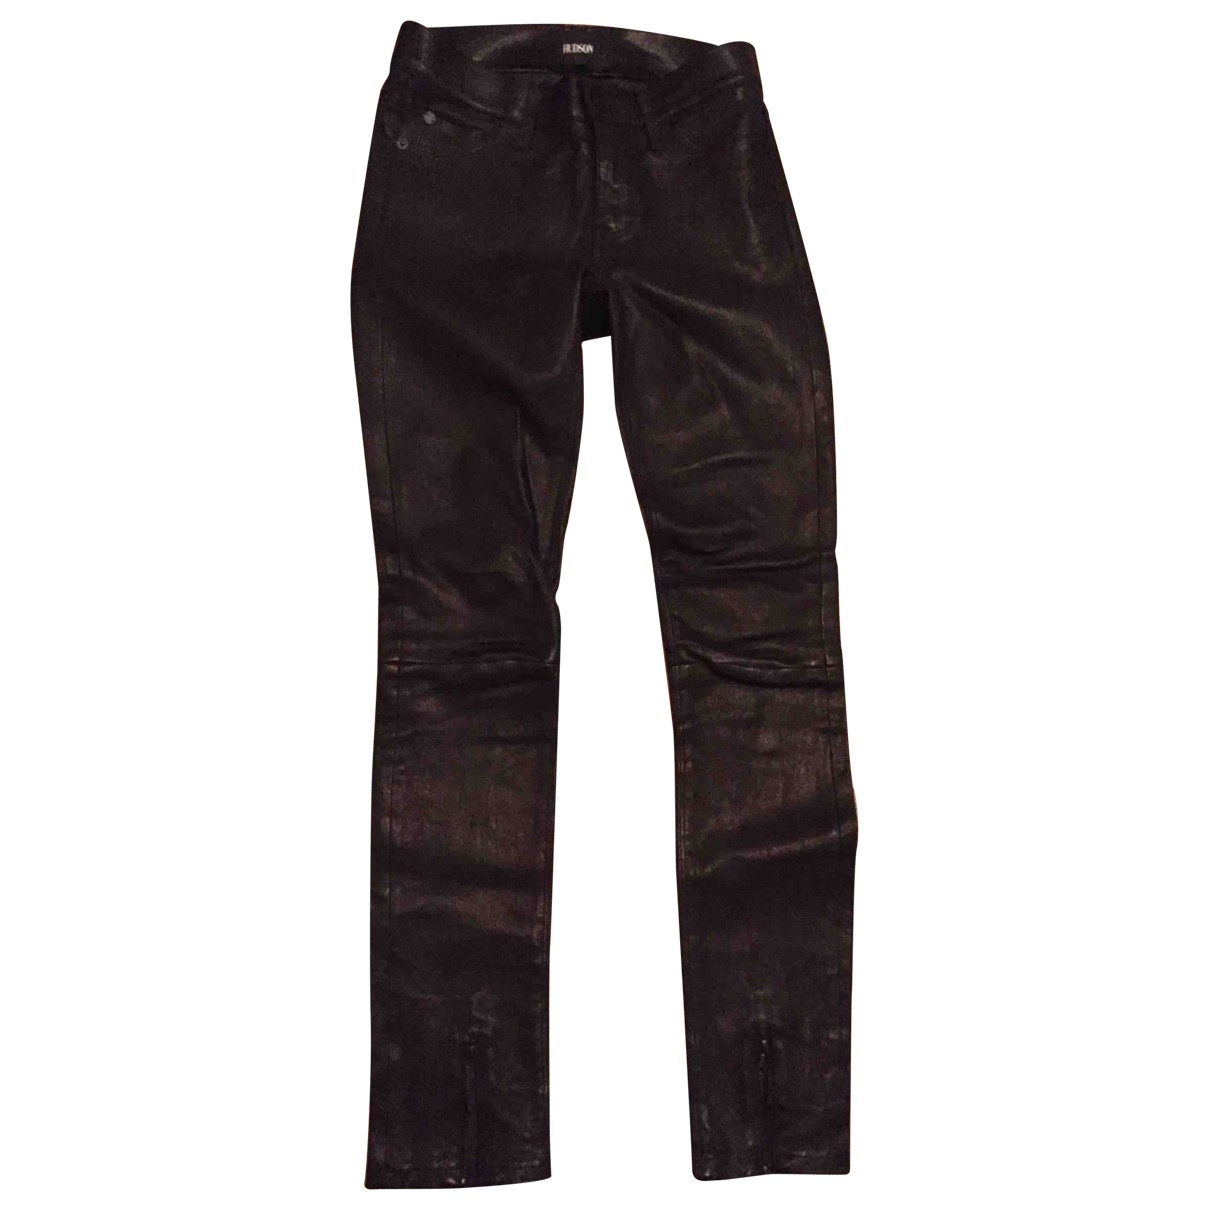 H By Hudson \N Black Leather Trousers for Women 34 FR